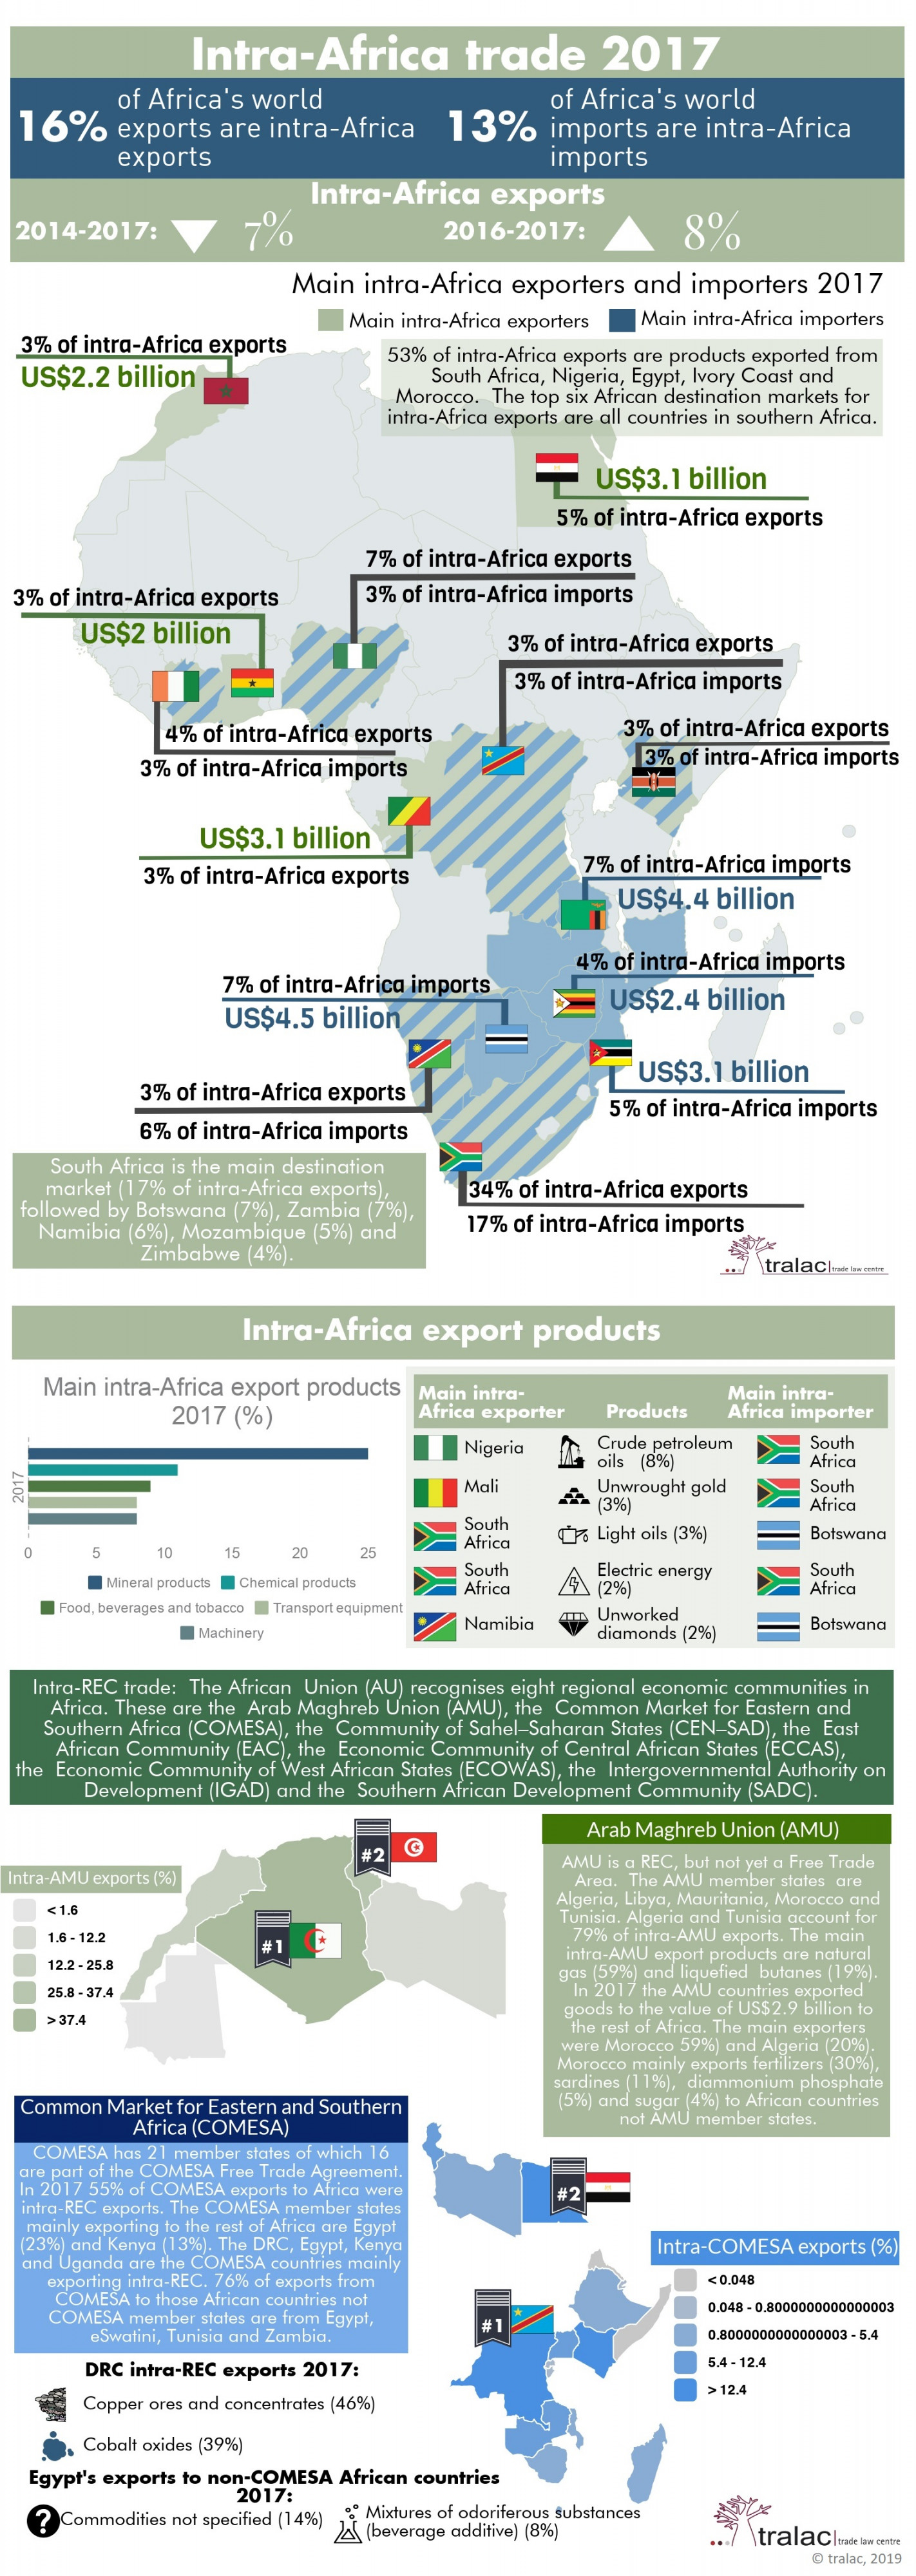 Intra-Africa trade profile – 2017